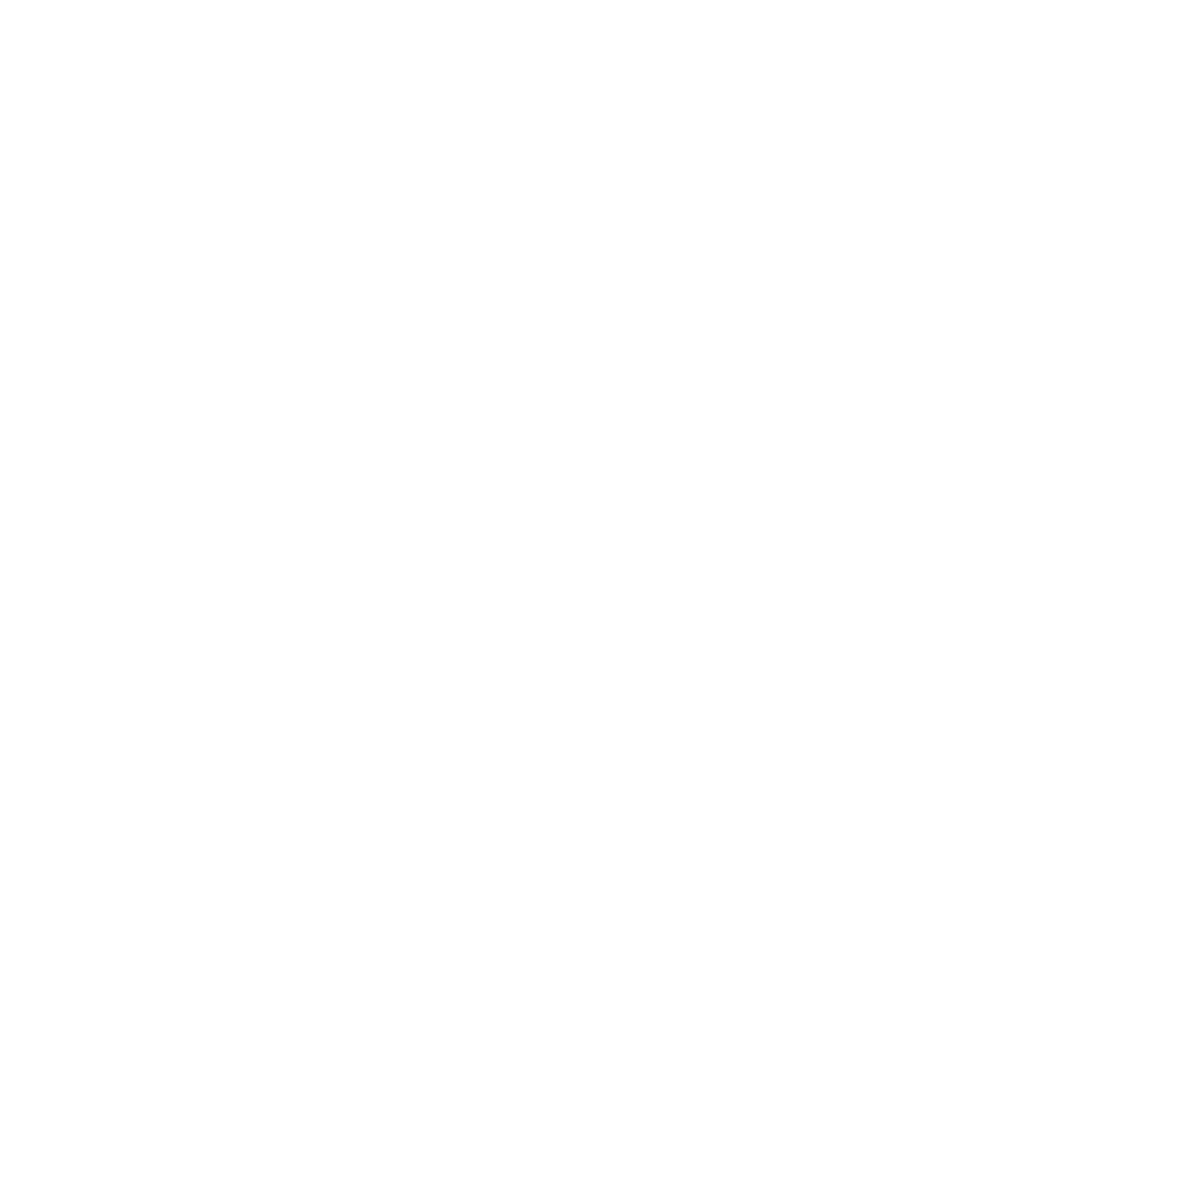 Flying Tortoise Academy